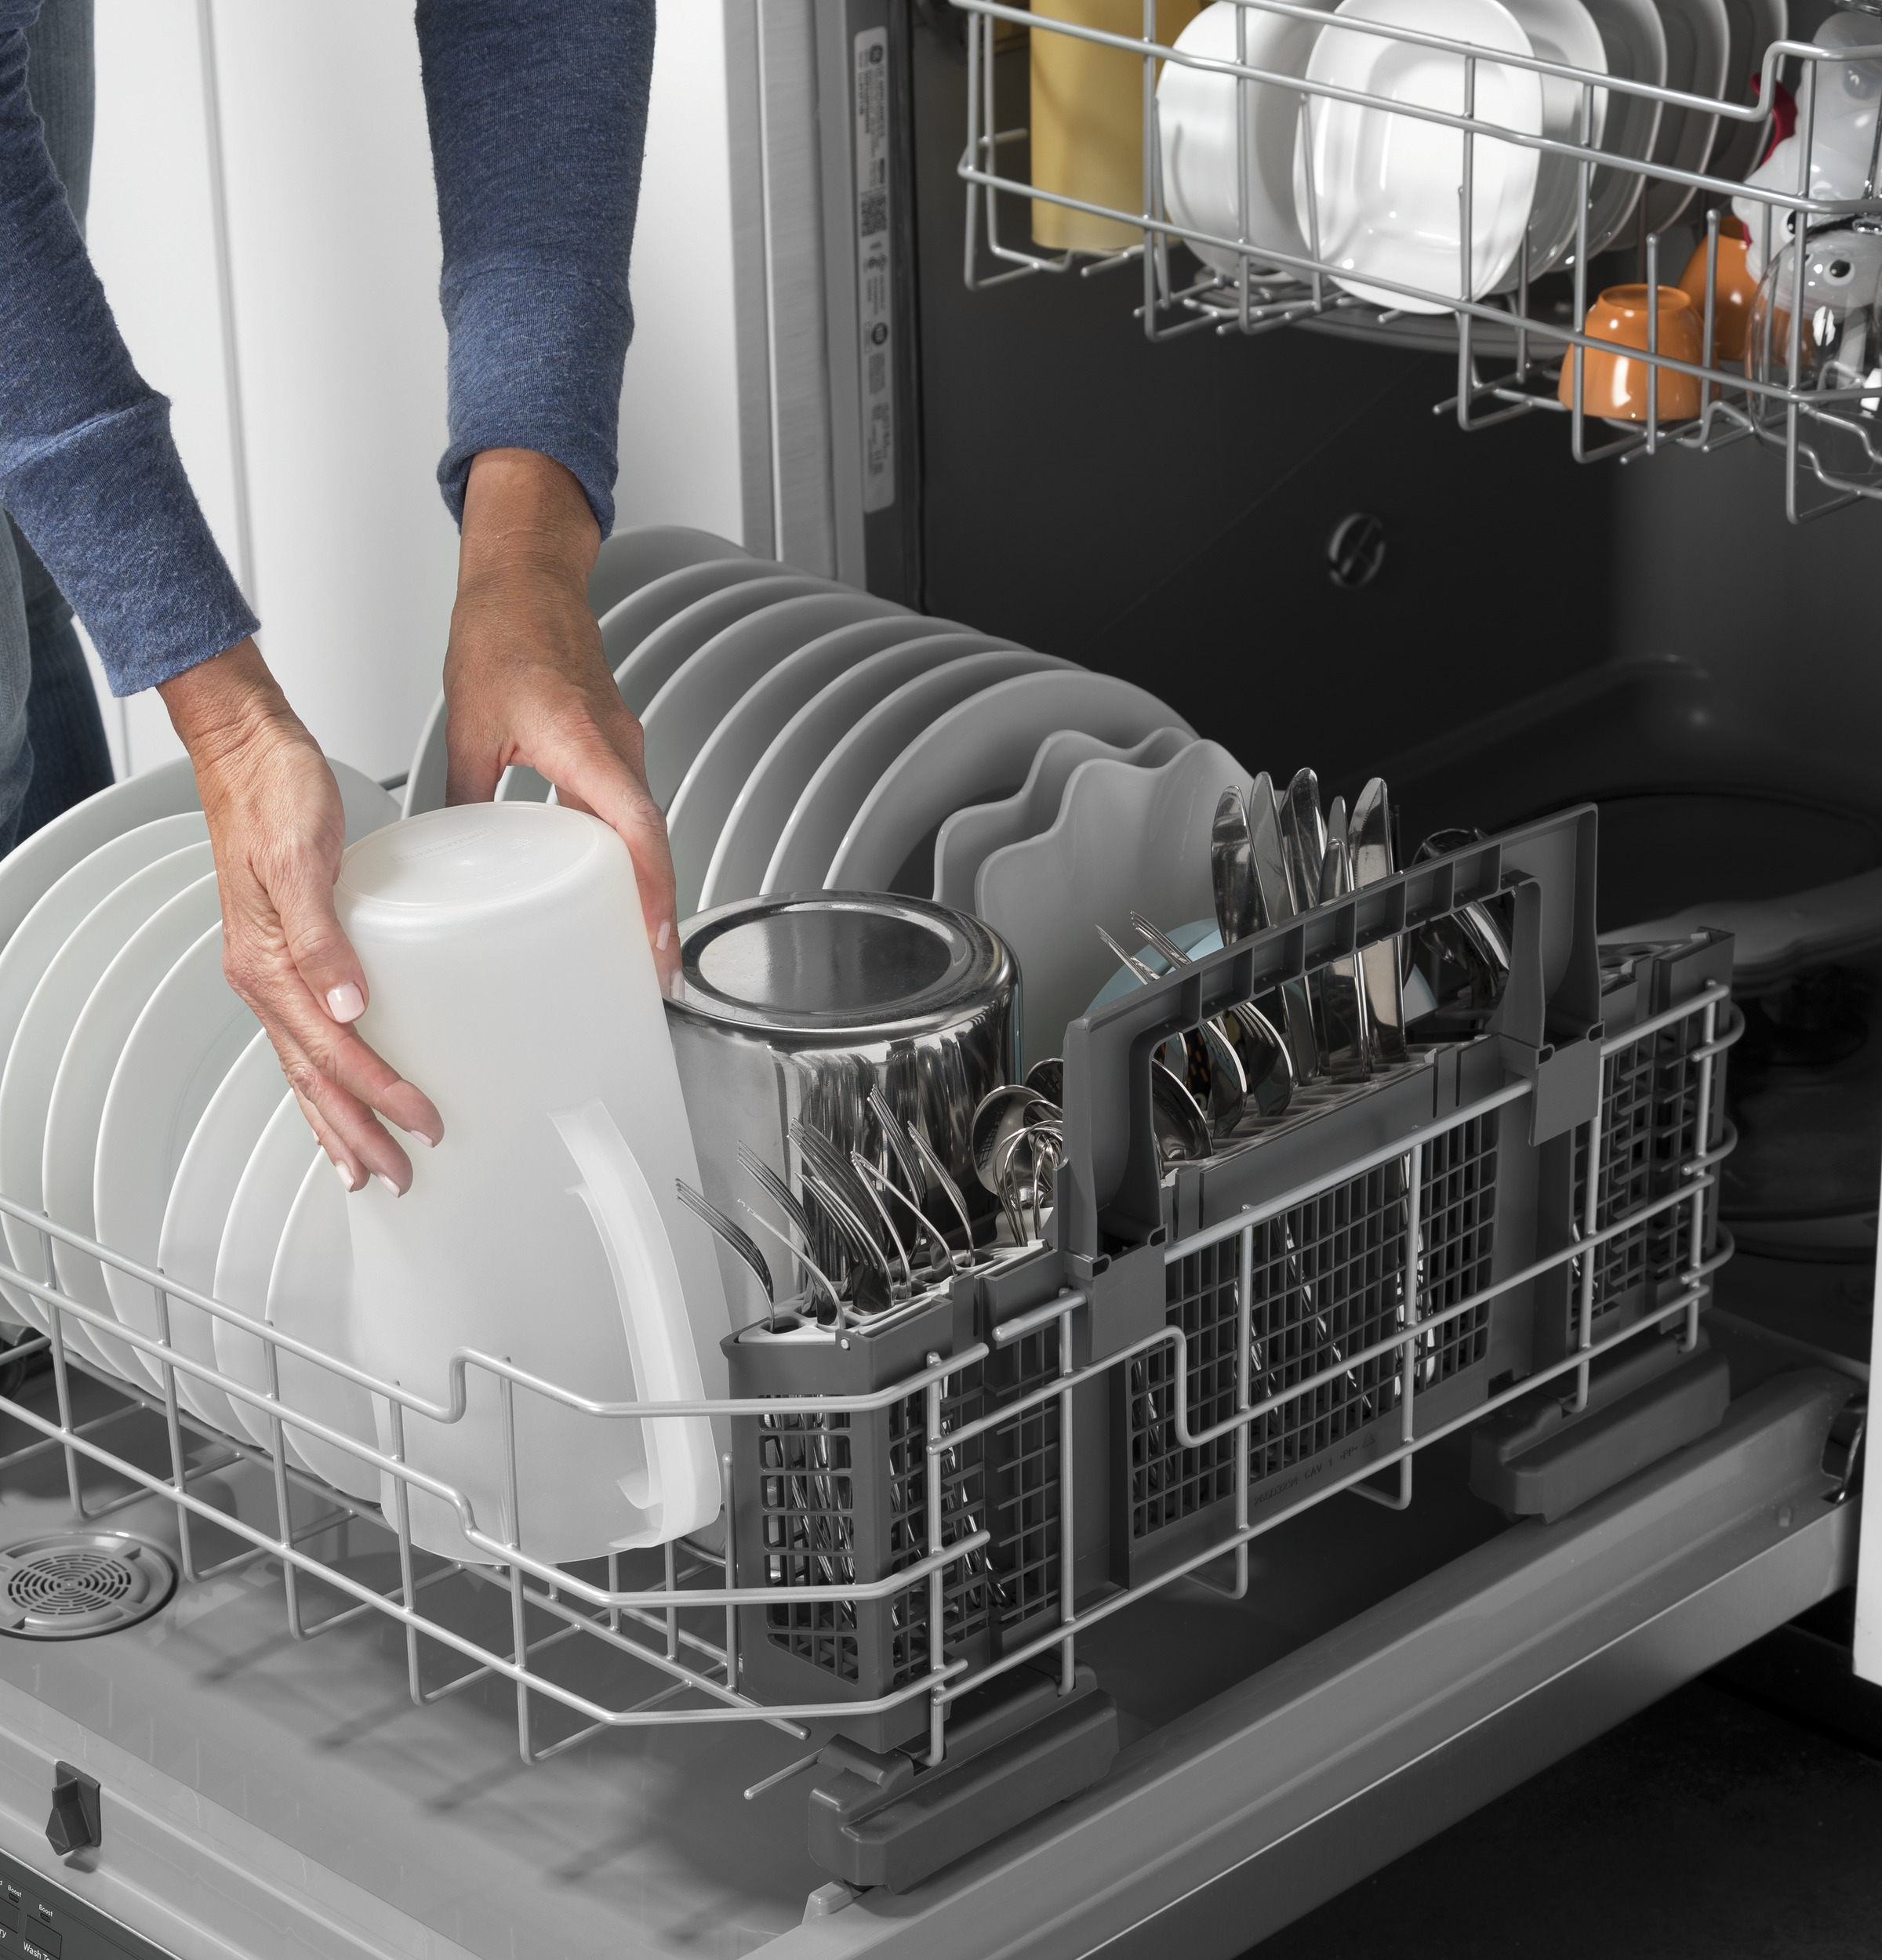 Model: GDT630PMMES | GE GE® Top Control with Plastic Interior Dishwasher with Sanitize Cycle & Dry Boost